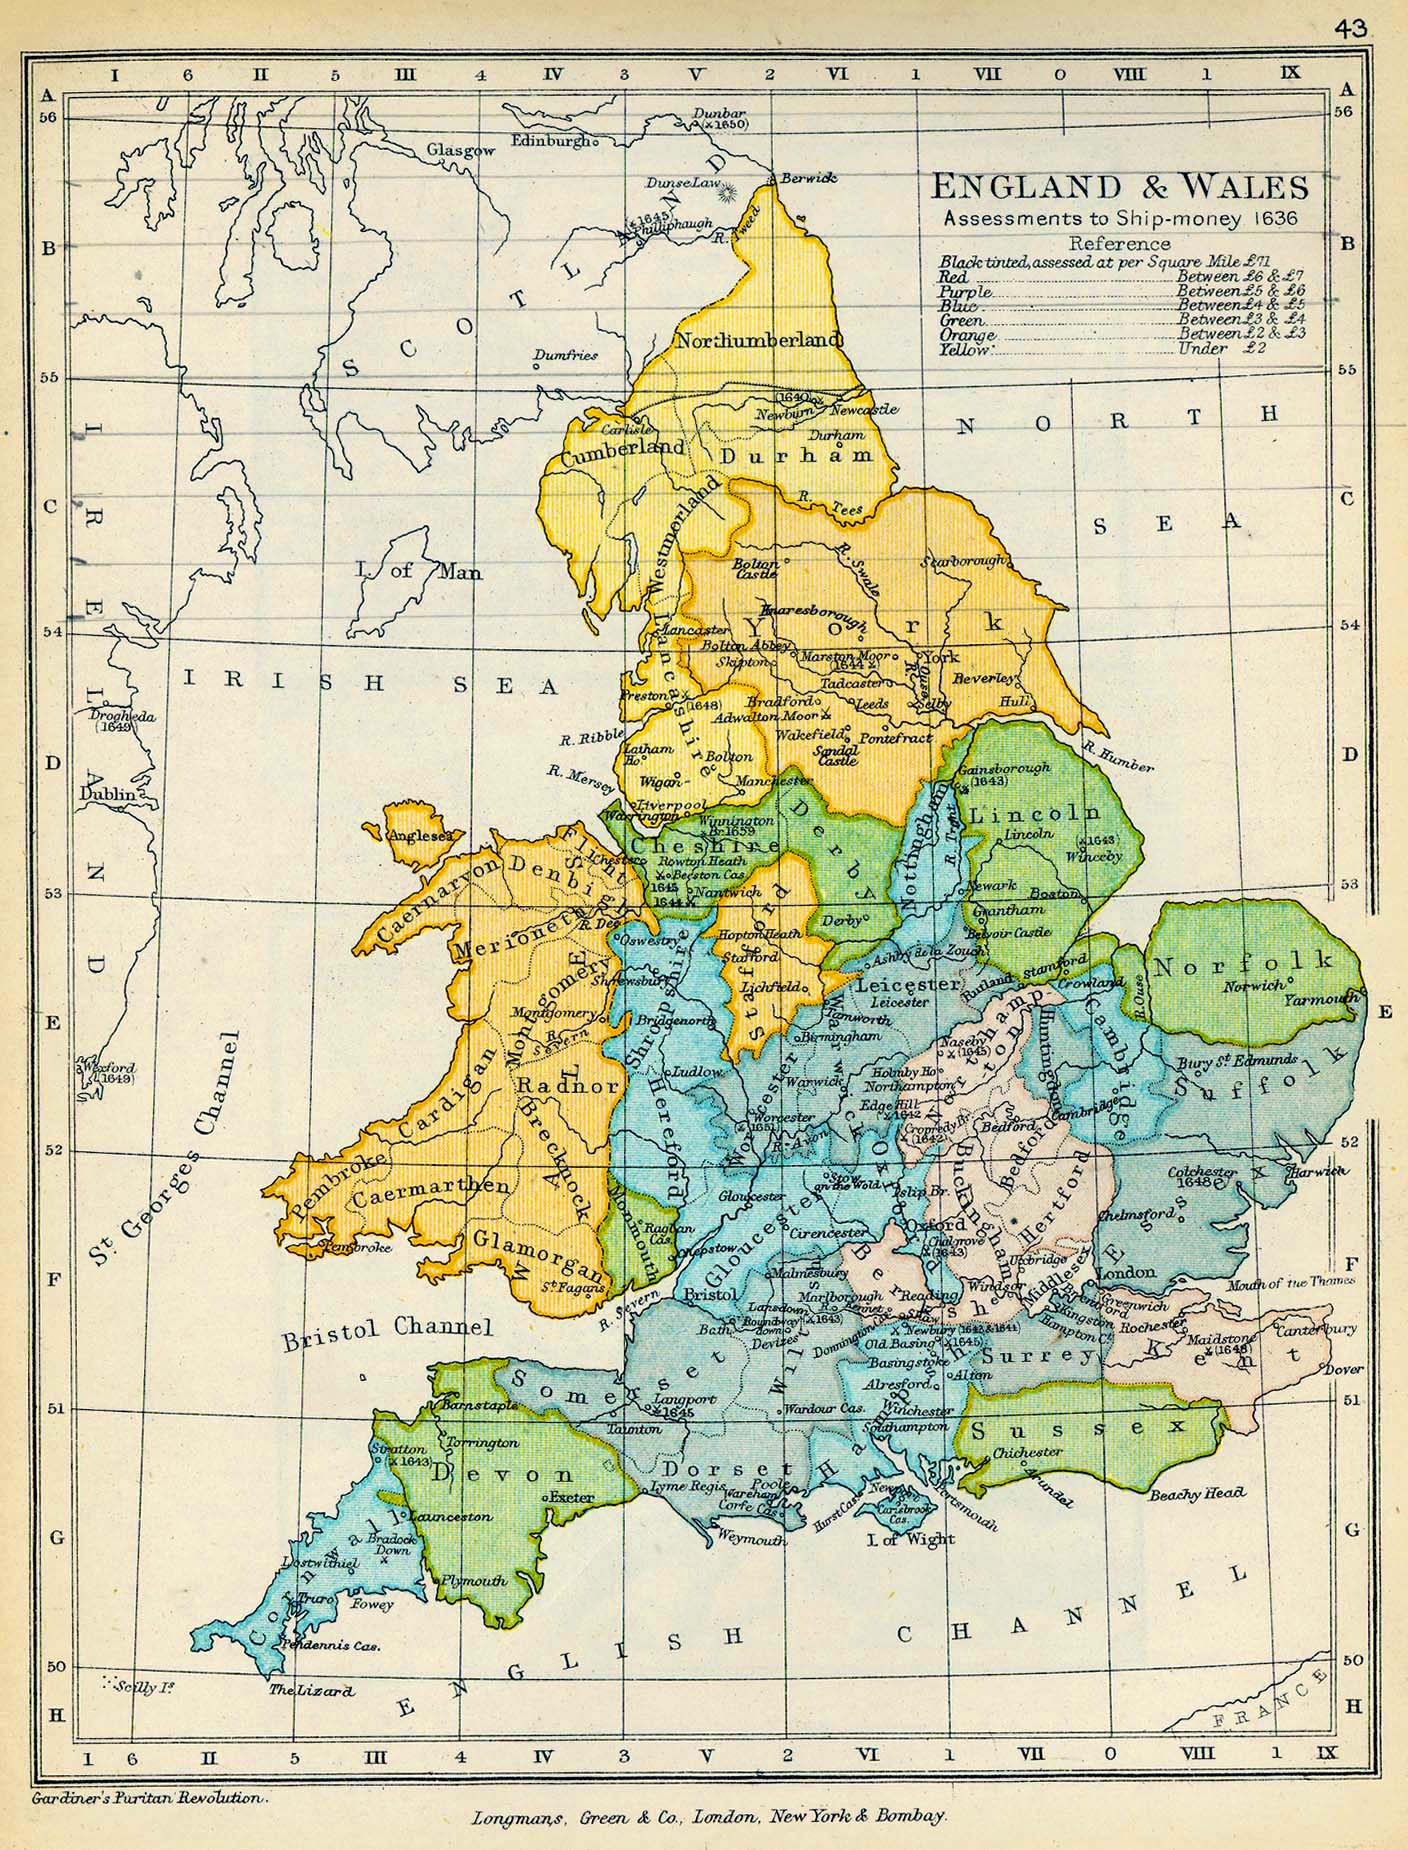 Map of England and Wales Assessments to Ship-money 1636